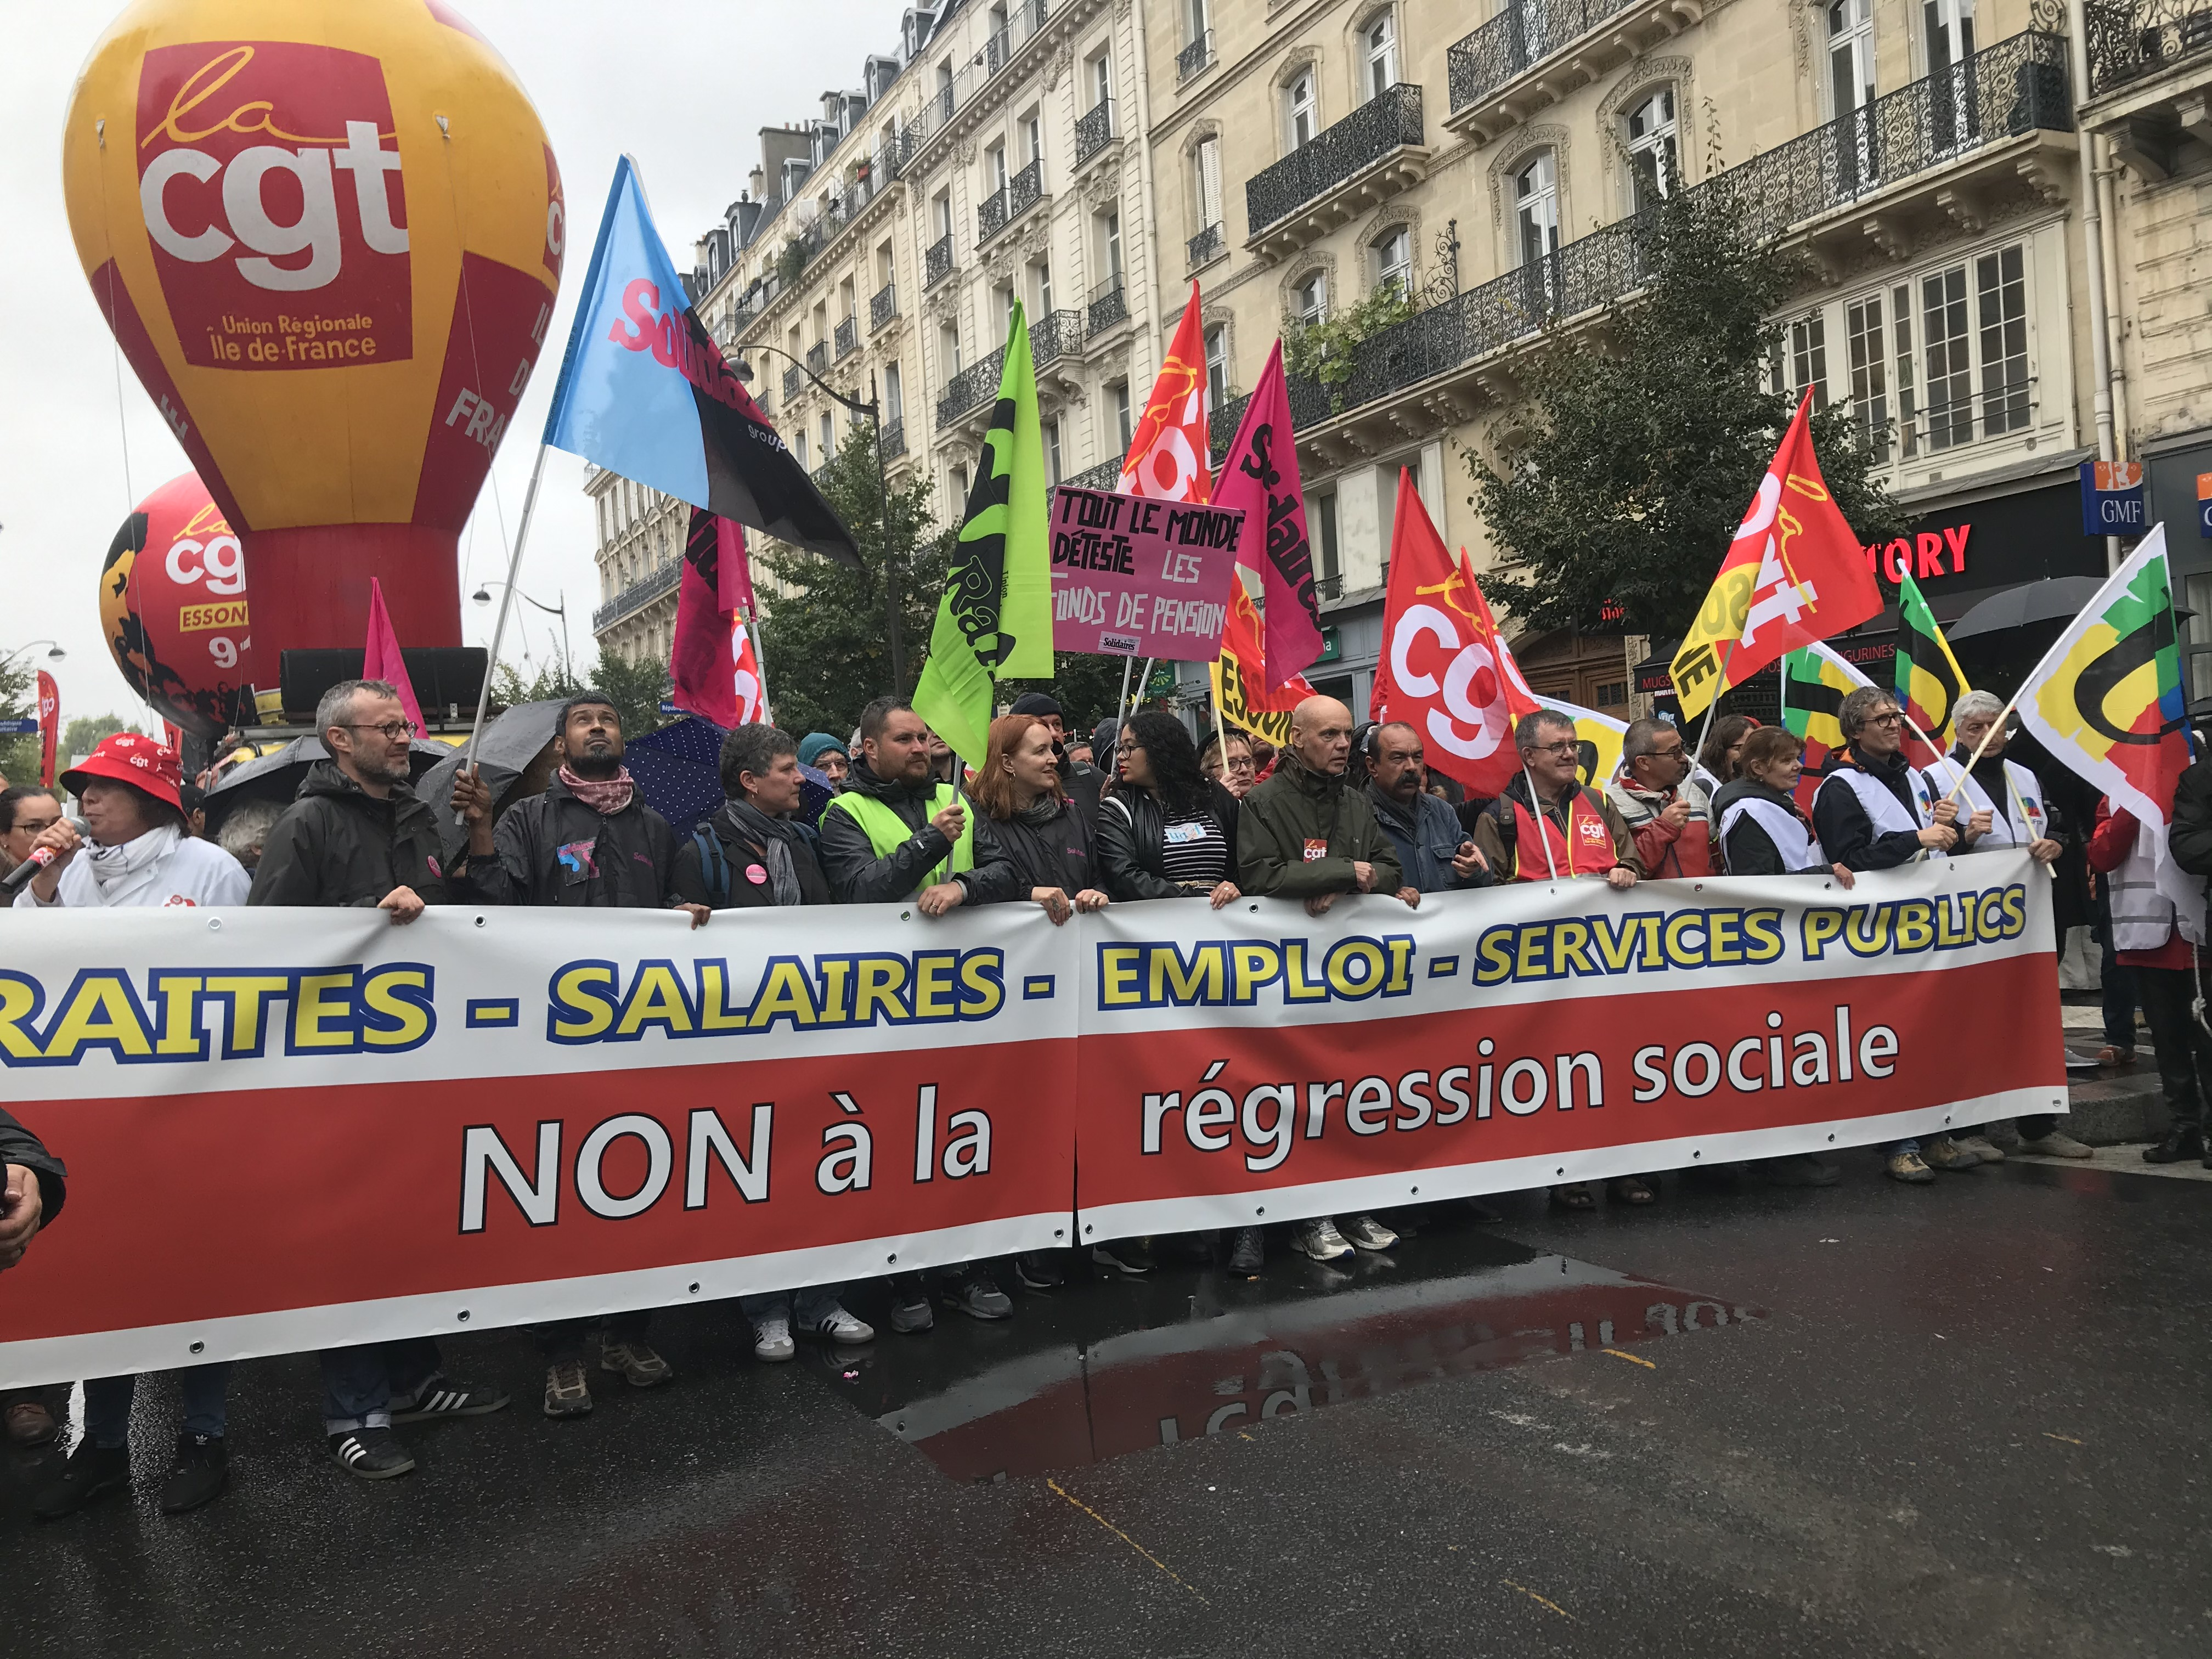 manifestation à paris le 24 septembre